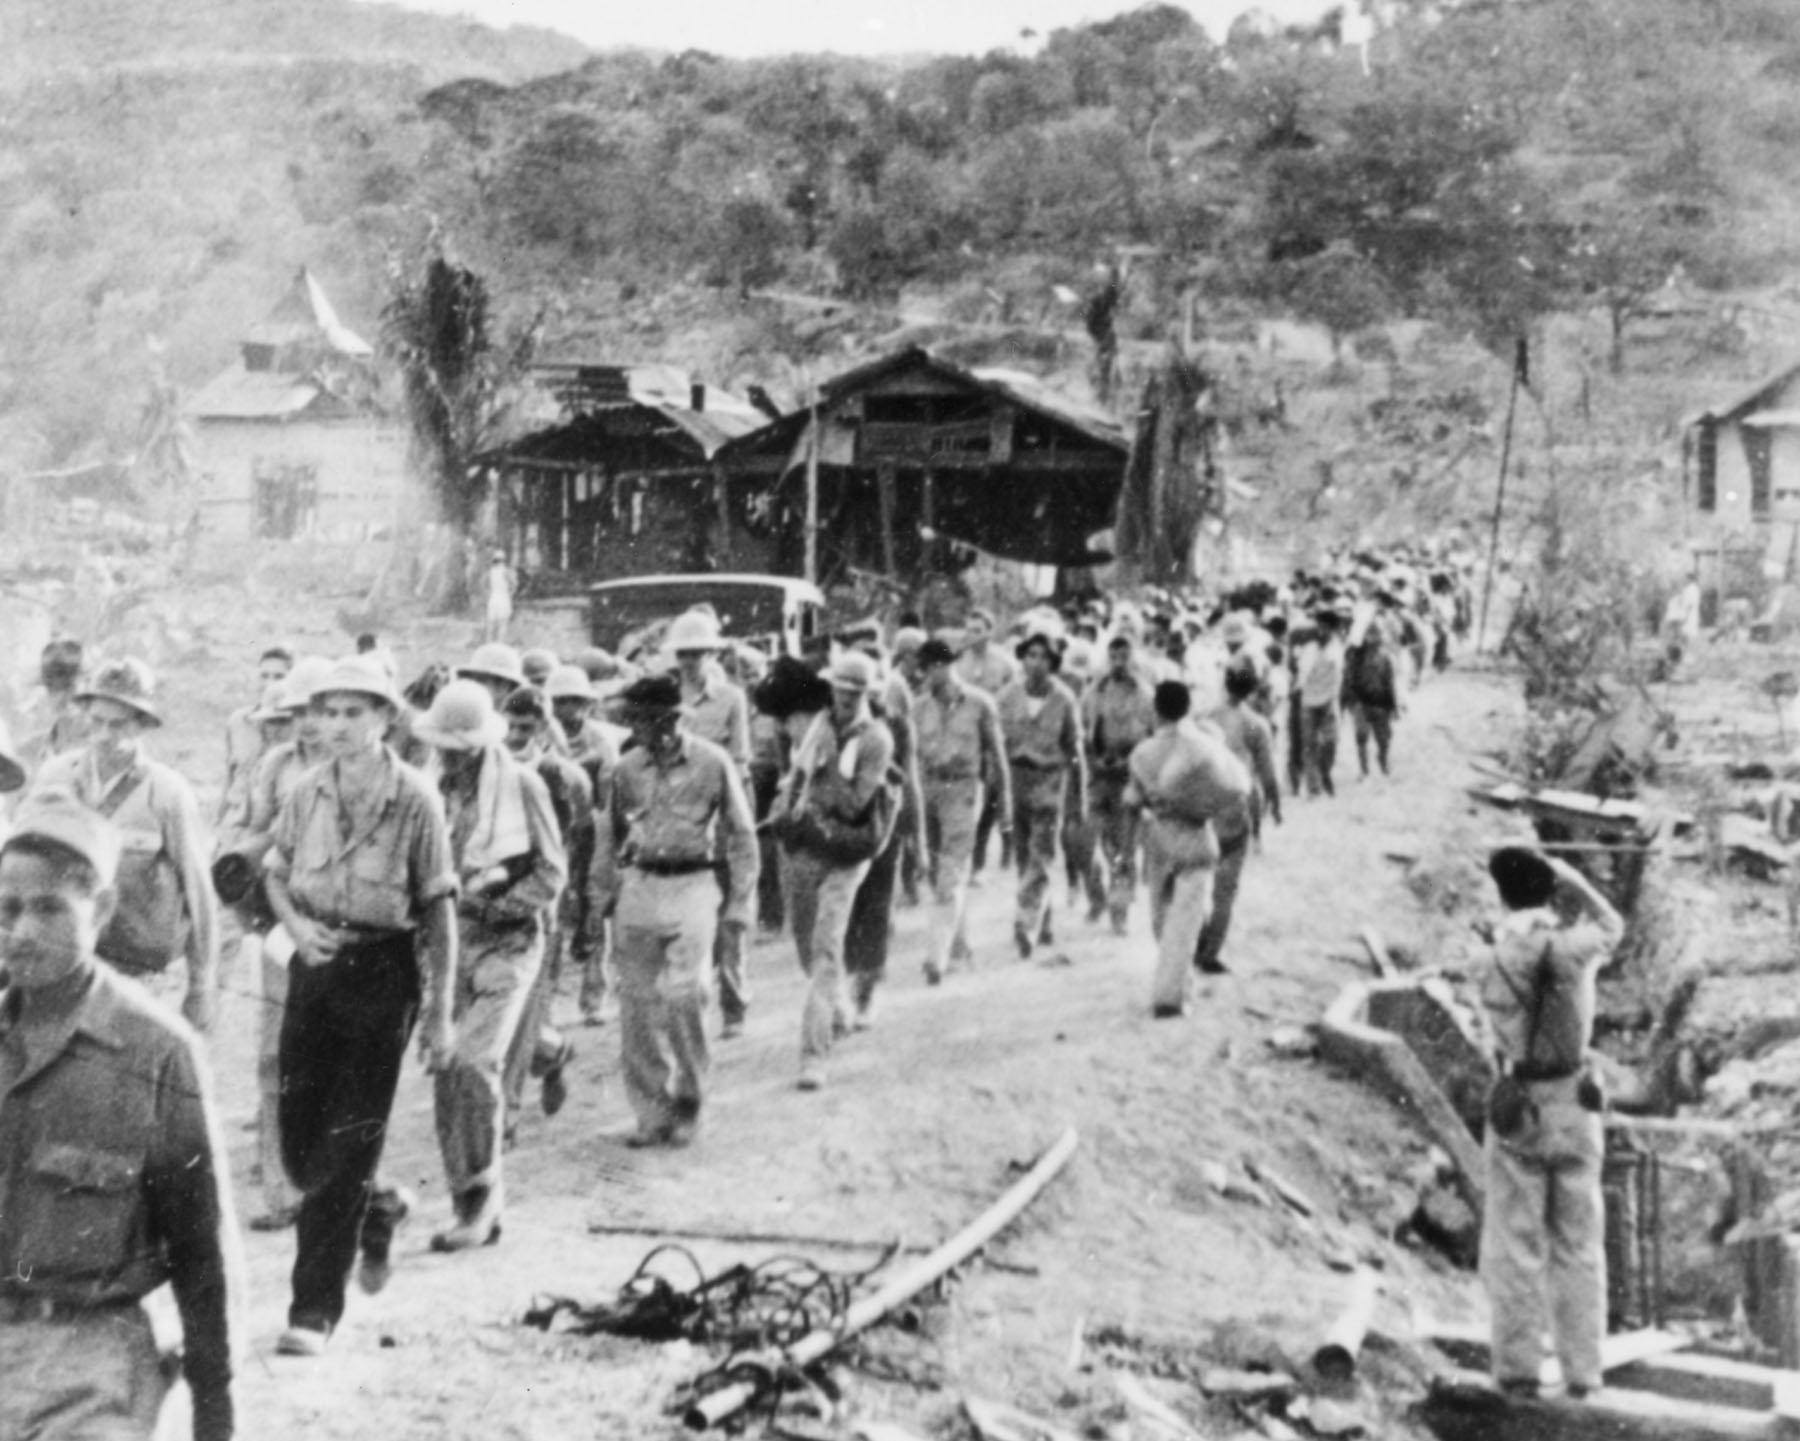 a review of the bataan death march 1 review of memorial bataan death march from a spectators perspective, the memorial bataan death march in new mexico is executed well enough so, that i don't mind going every year, spending the night, and hanging out at white sands all day.